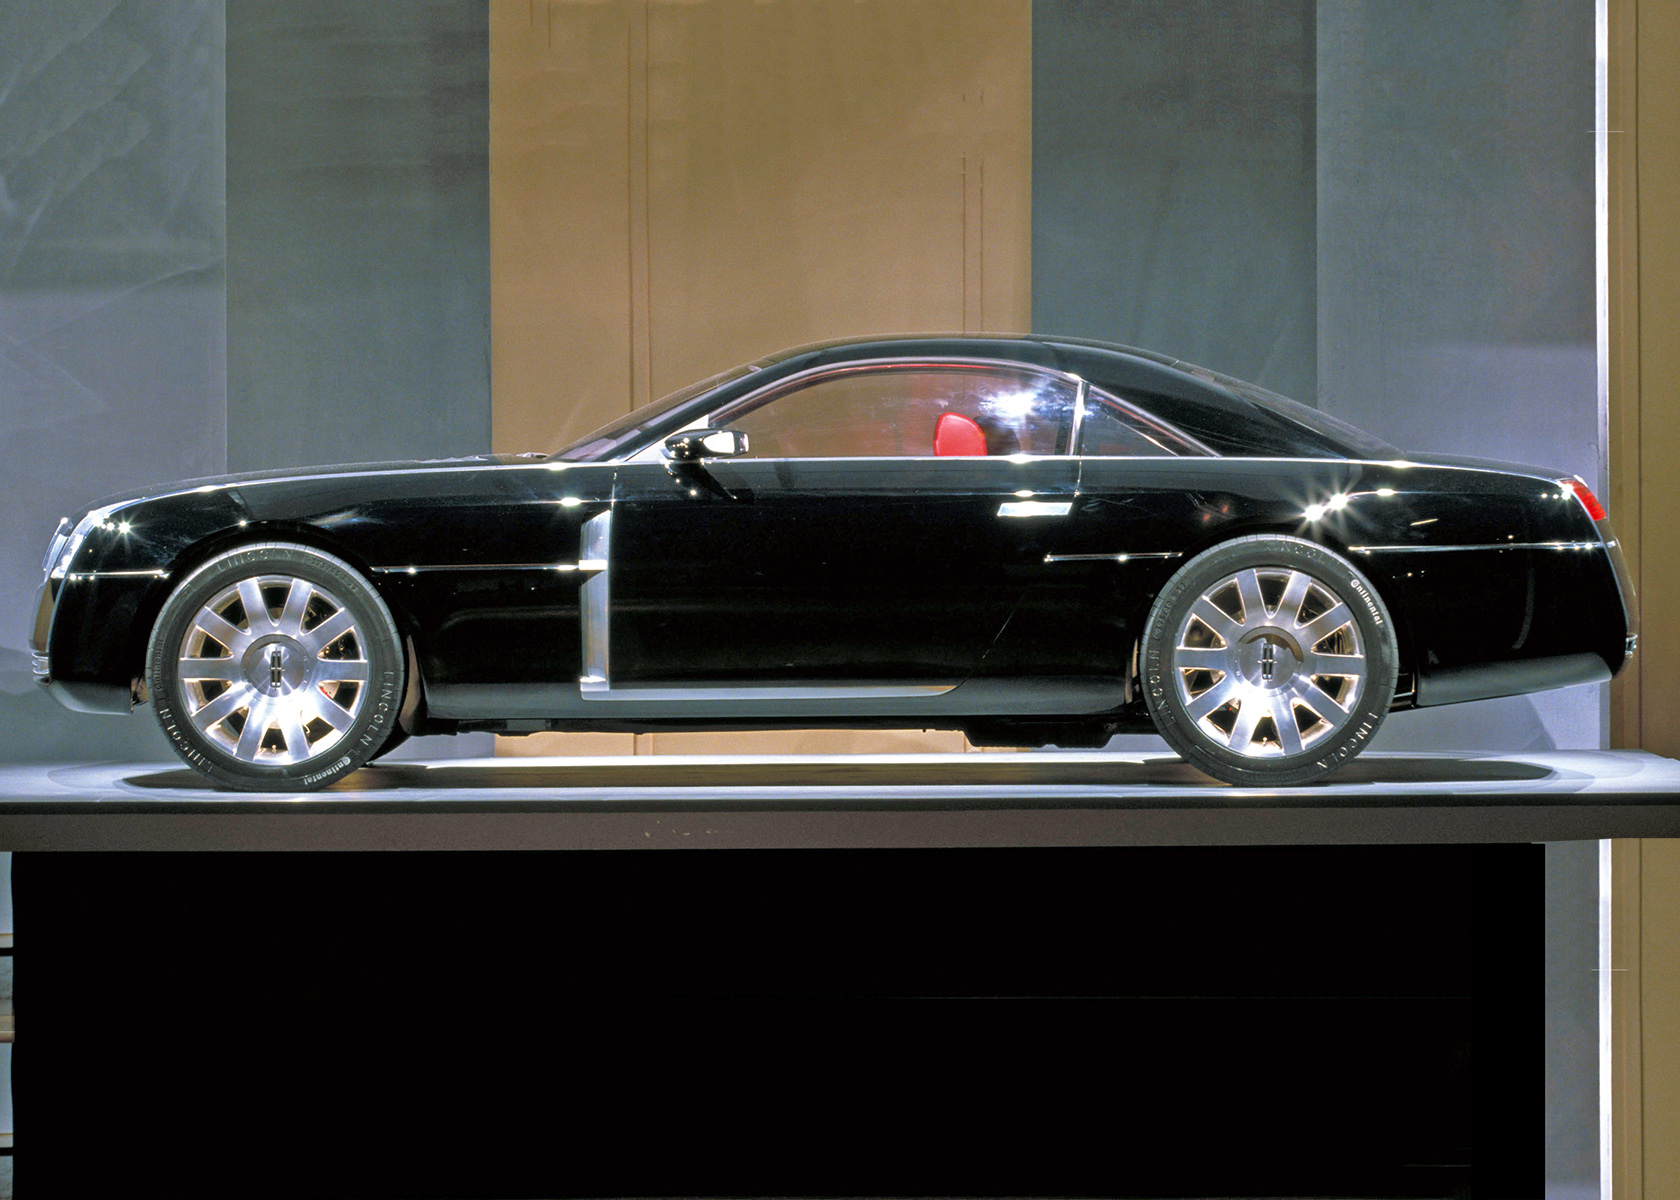 2001 Lincoln Mk9 And 2003 Mercury Messenger Concept Cars